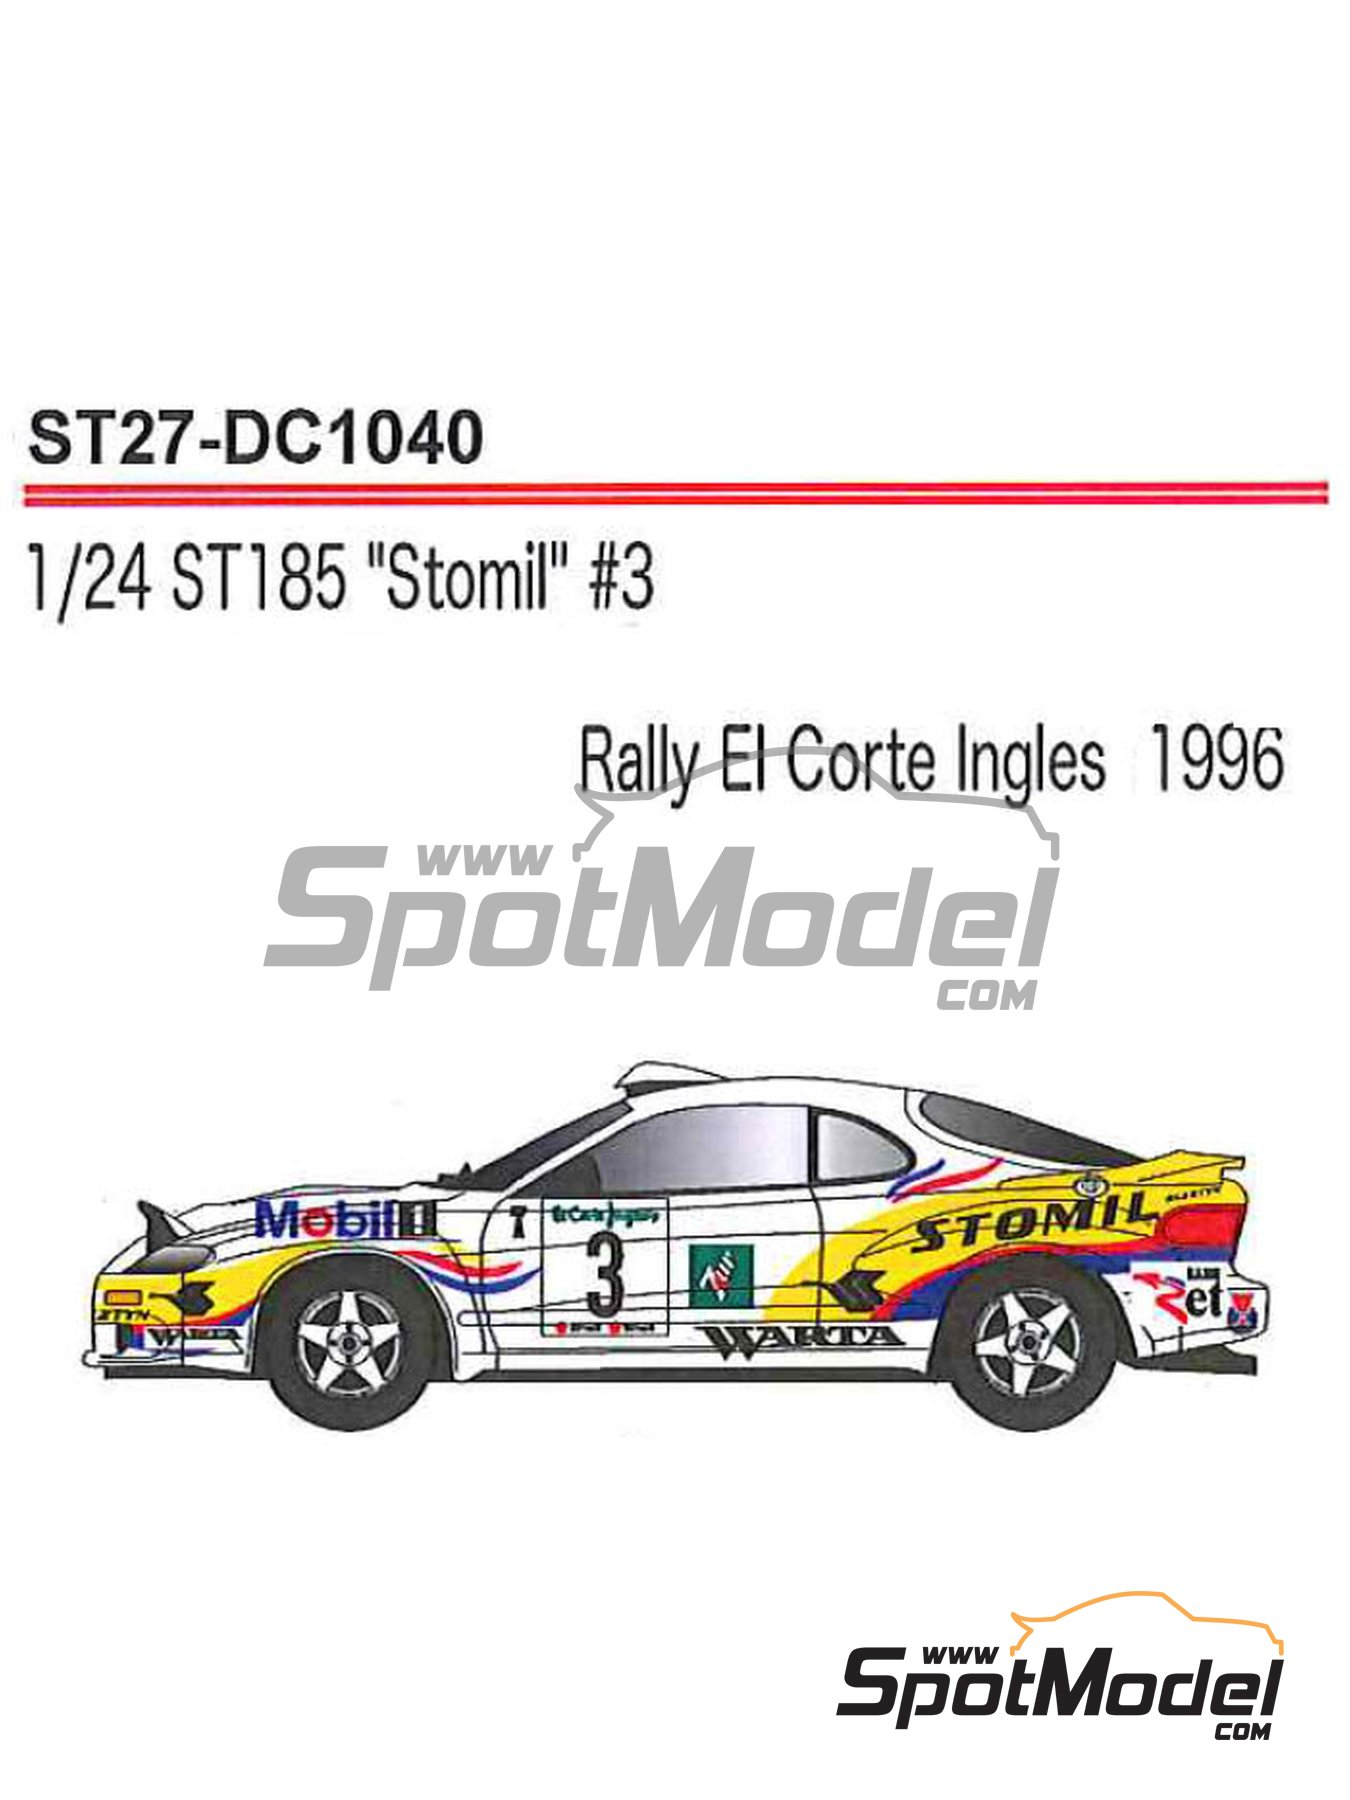 Toyota Celica GT-Four WRC Stomil - El Corte Ingles Rally 1996 | Marking / livery in 1/24 scale manufactured by Studio27 (ref. ST27-DC1040) image